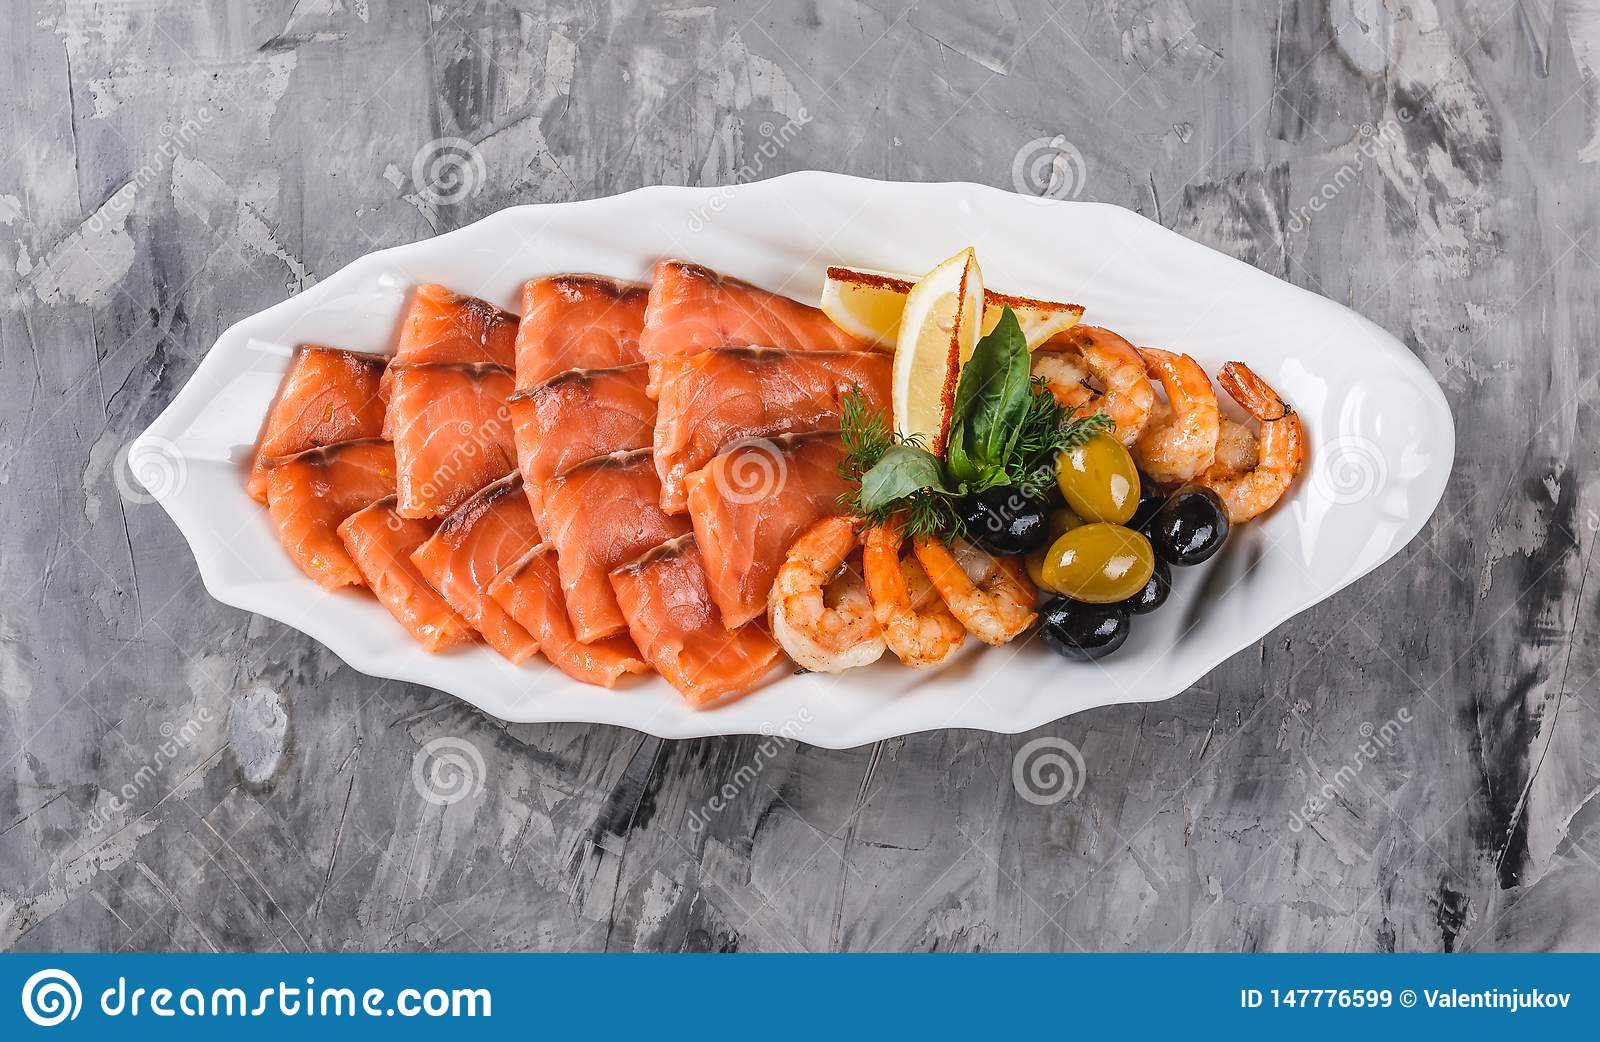 Seafood Platter With Salmon Slice Shrimp Slices Fish Fillet Decorated With Olives And Lemon In Plate Over Rustic Background Stock Image Image Of Freshness Dish 147776599